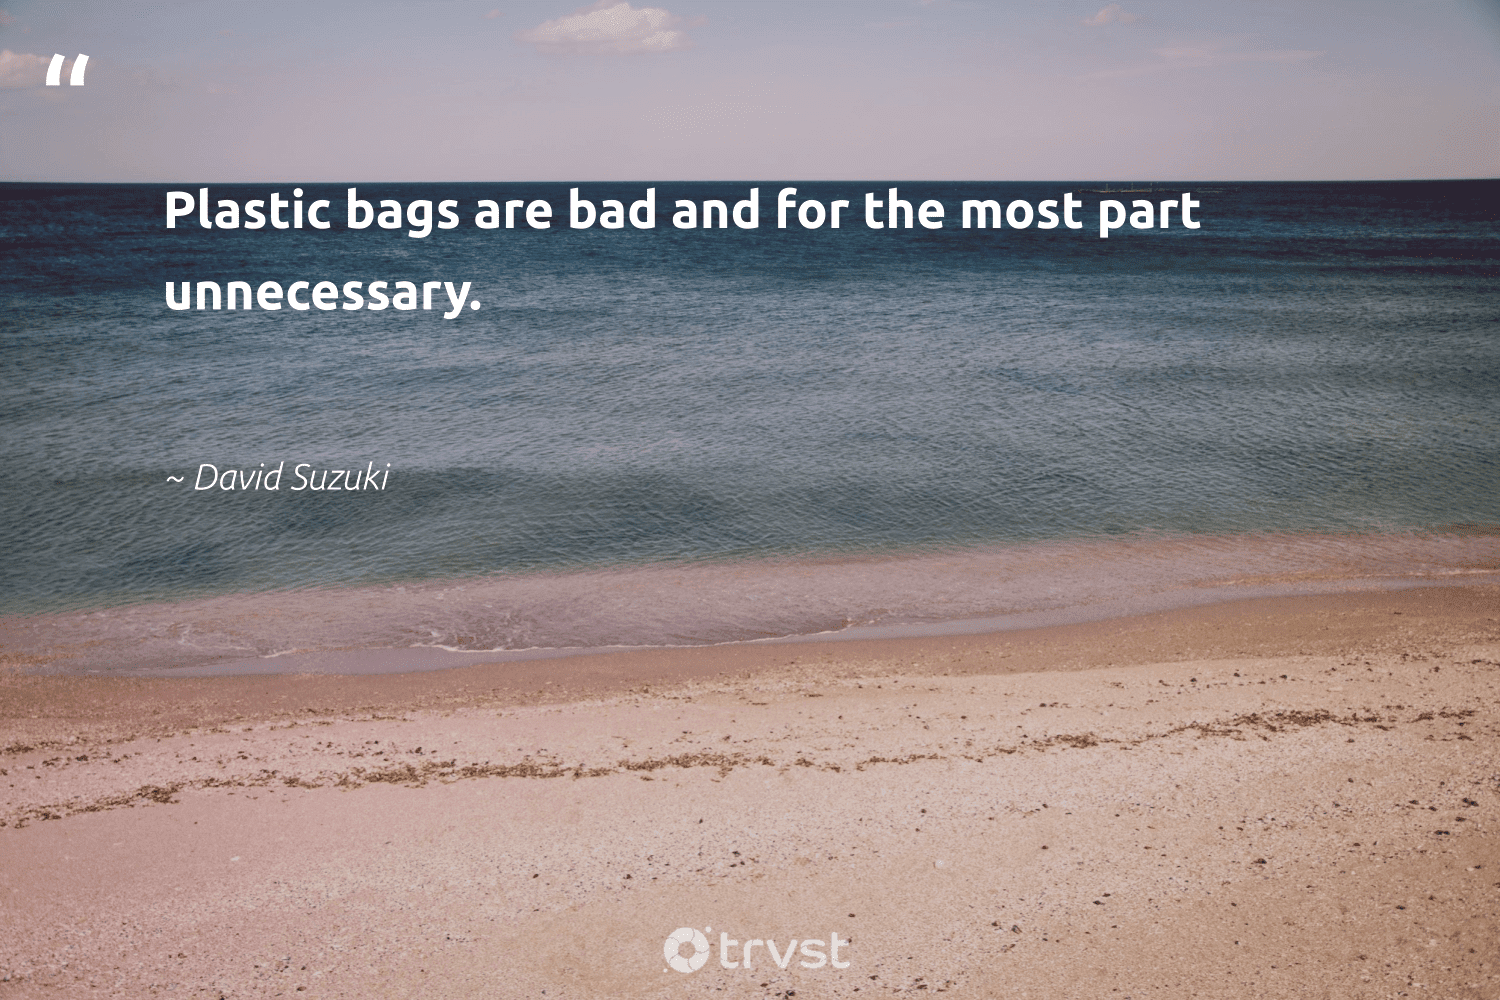 """""""Plastic bags are bad and for the most part unnecessary.""""  - David Suzuki #trvst #quotes #plasticwaste #plastic #plastics #biodegradable #saveourplanet #thinkgreen #plasticfreesolutions #savetheplanet #waronwaste #dotherightthing"""